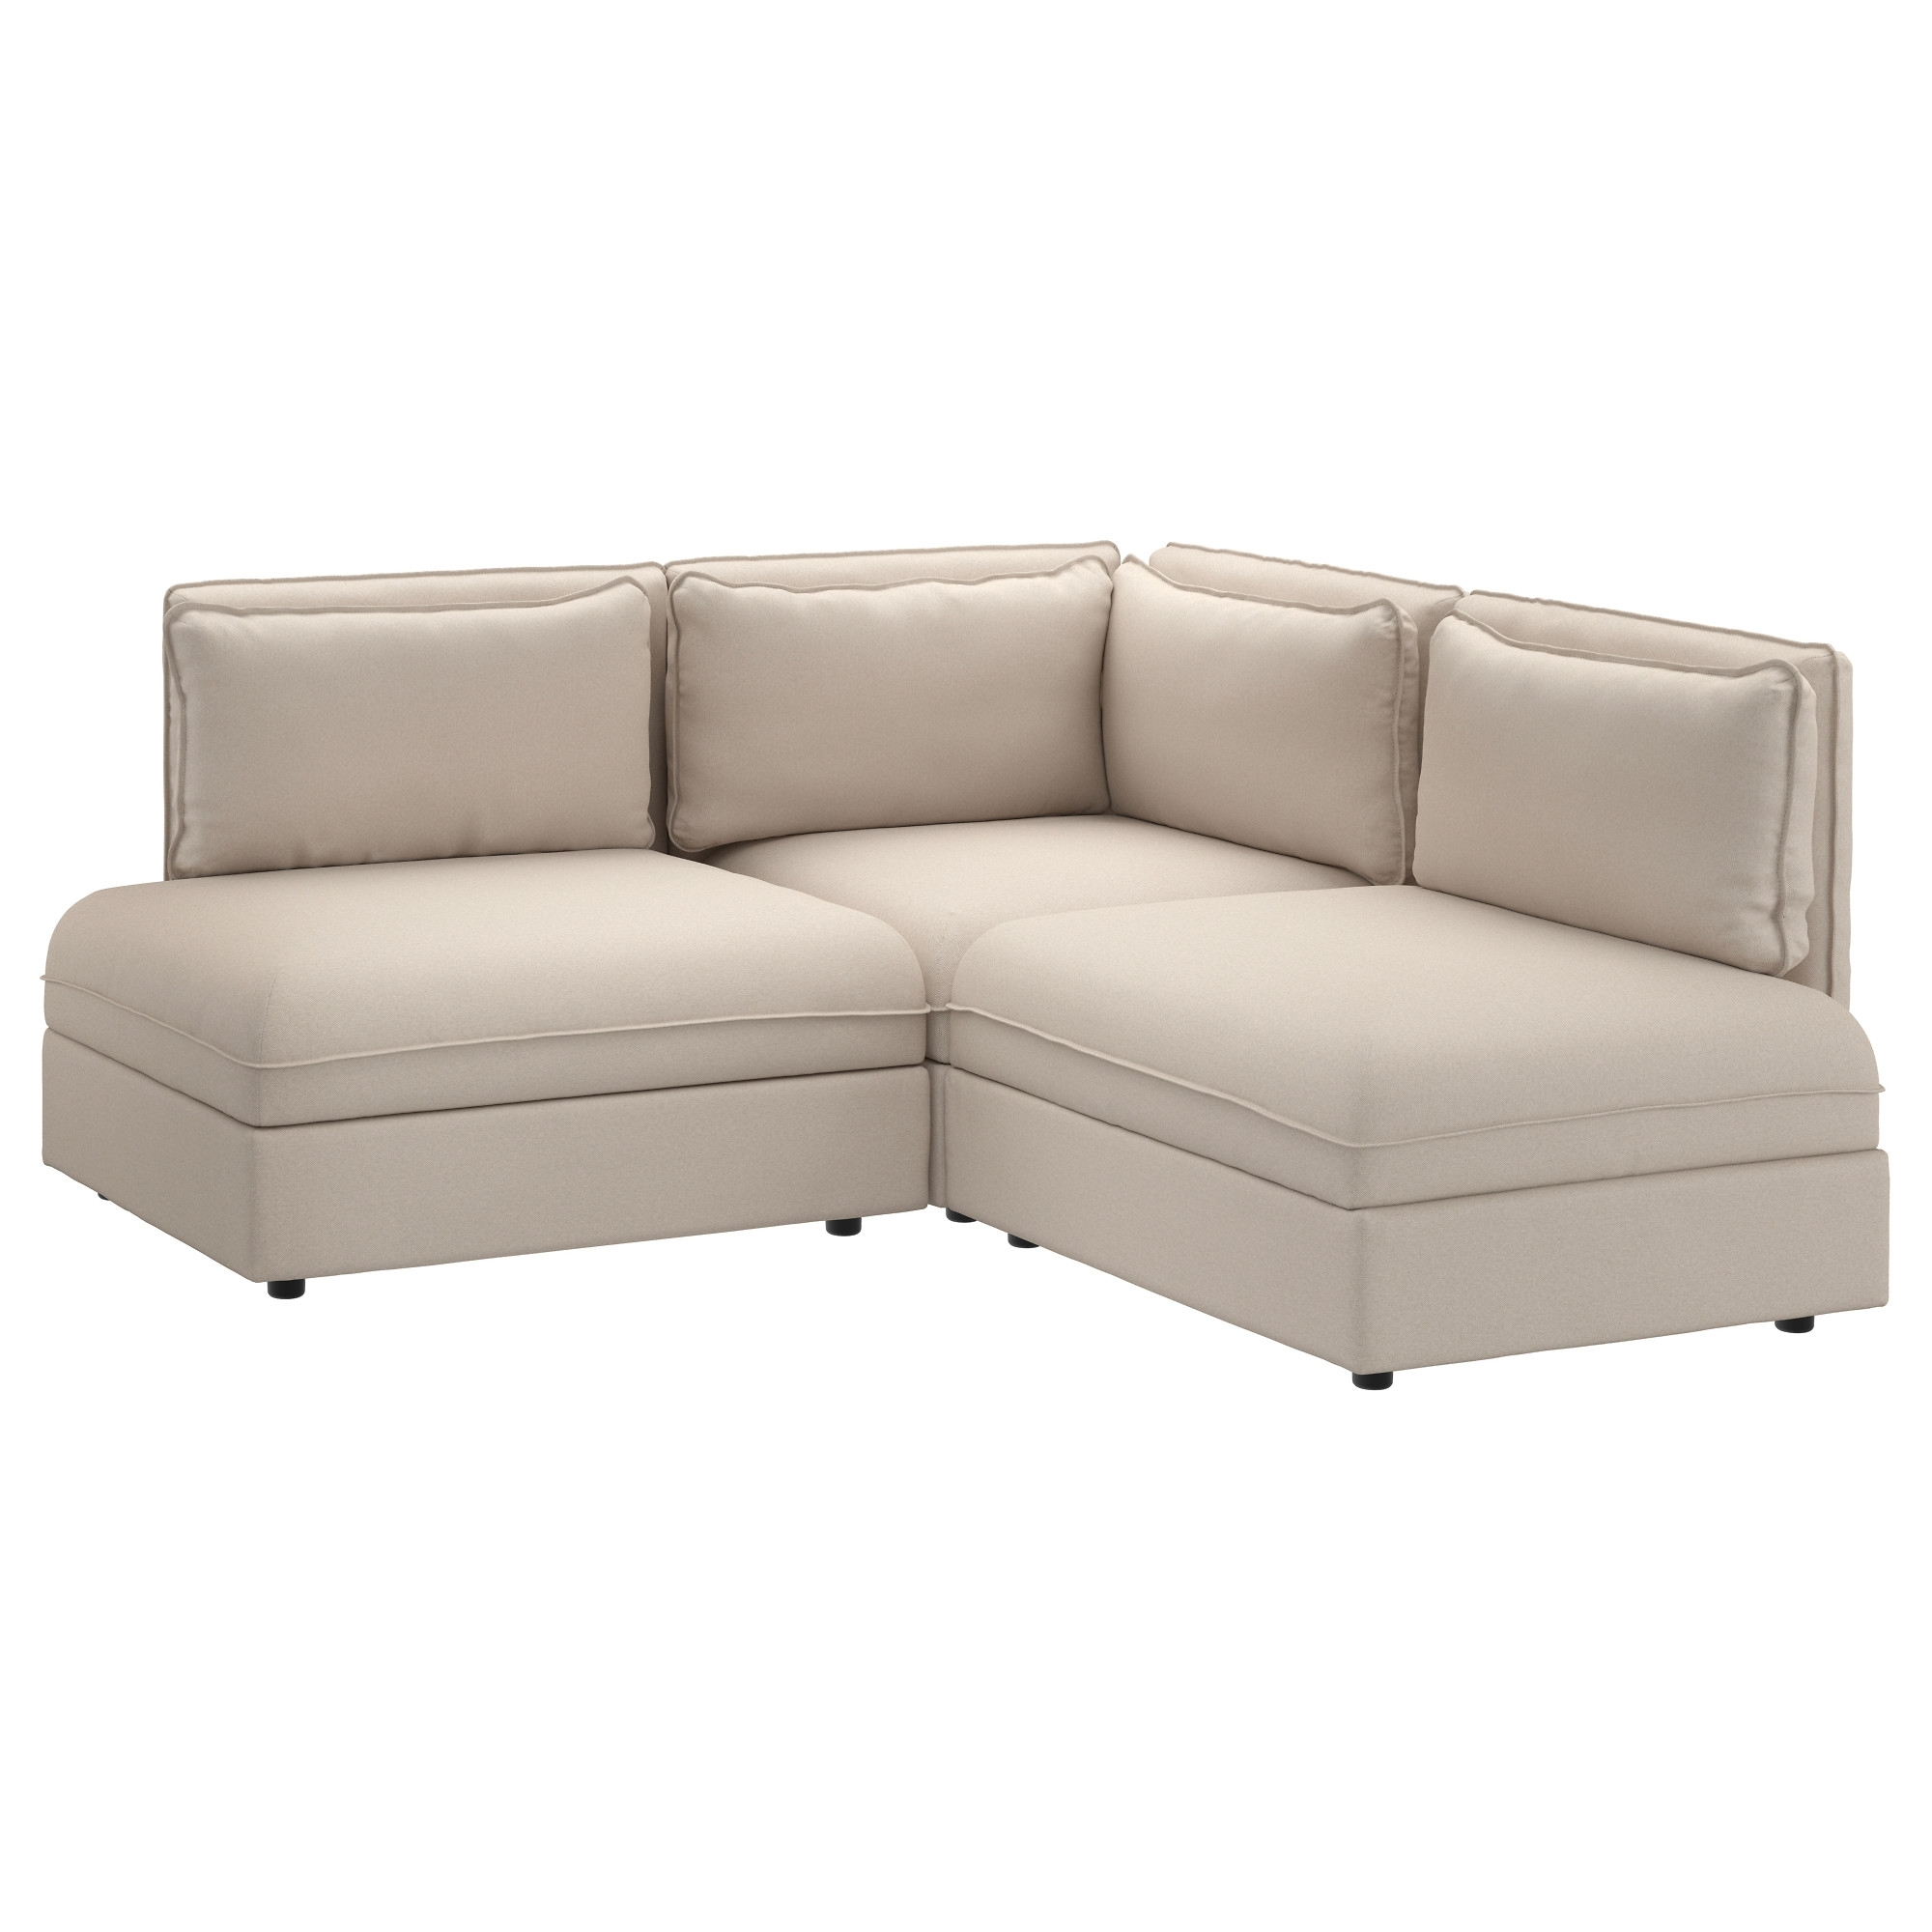 Vallentuna Sectional, 2 Seat – Murum Beige – Ikea Intended For Current Ikea Sectional Sofa Beds (View 20 of 20)